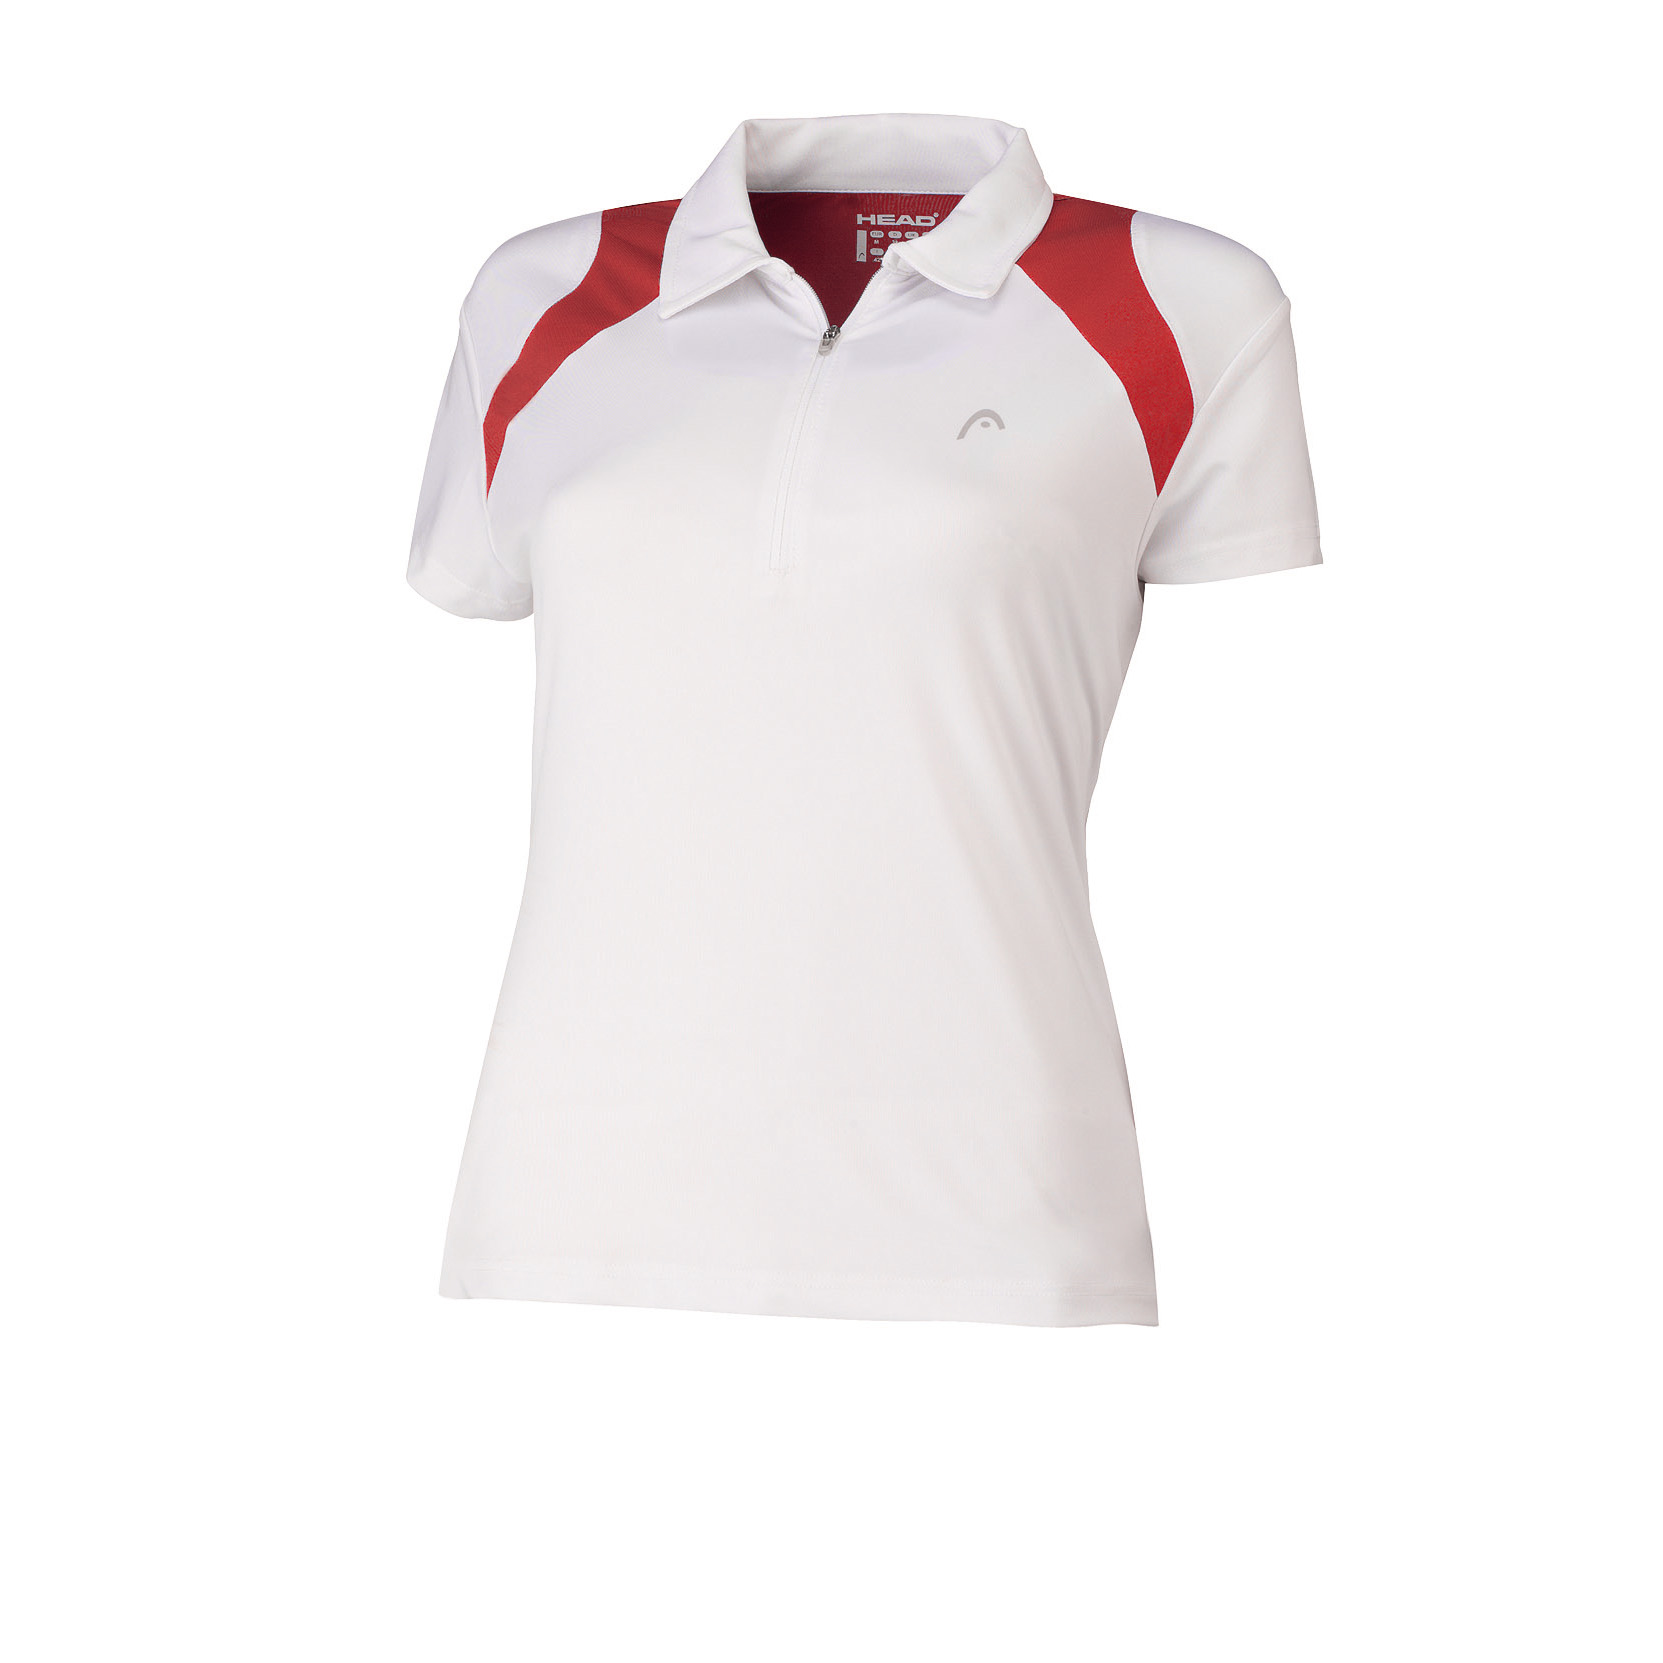 Polo shirts ebay autos post for Name brand golf shirts direct